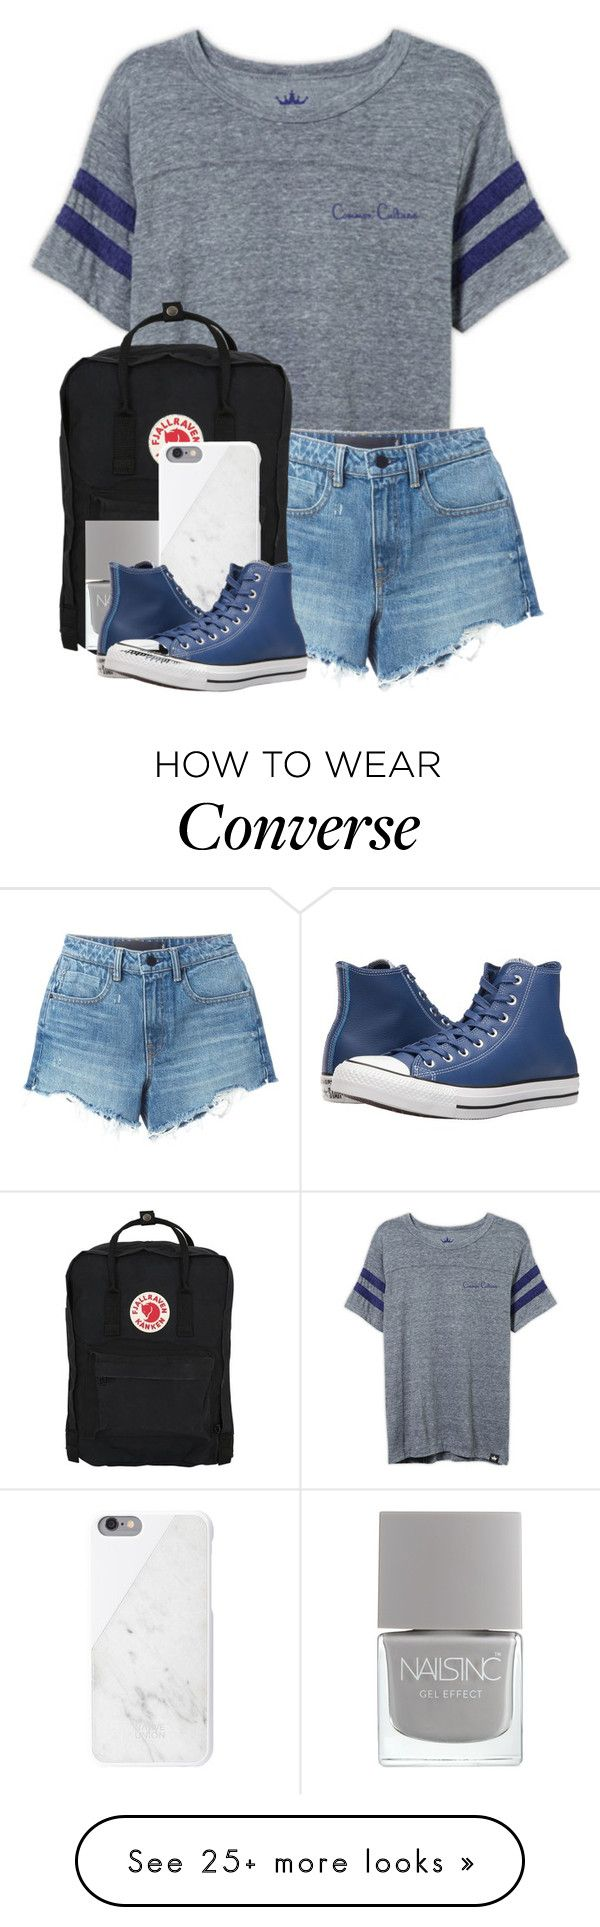 """""""Kylie's fourth birthday party ❤️"""" by questionable-desires on Polyvore featuring Alexander Wang, Fjällräven, Native Union and Converse"""